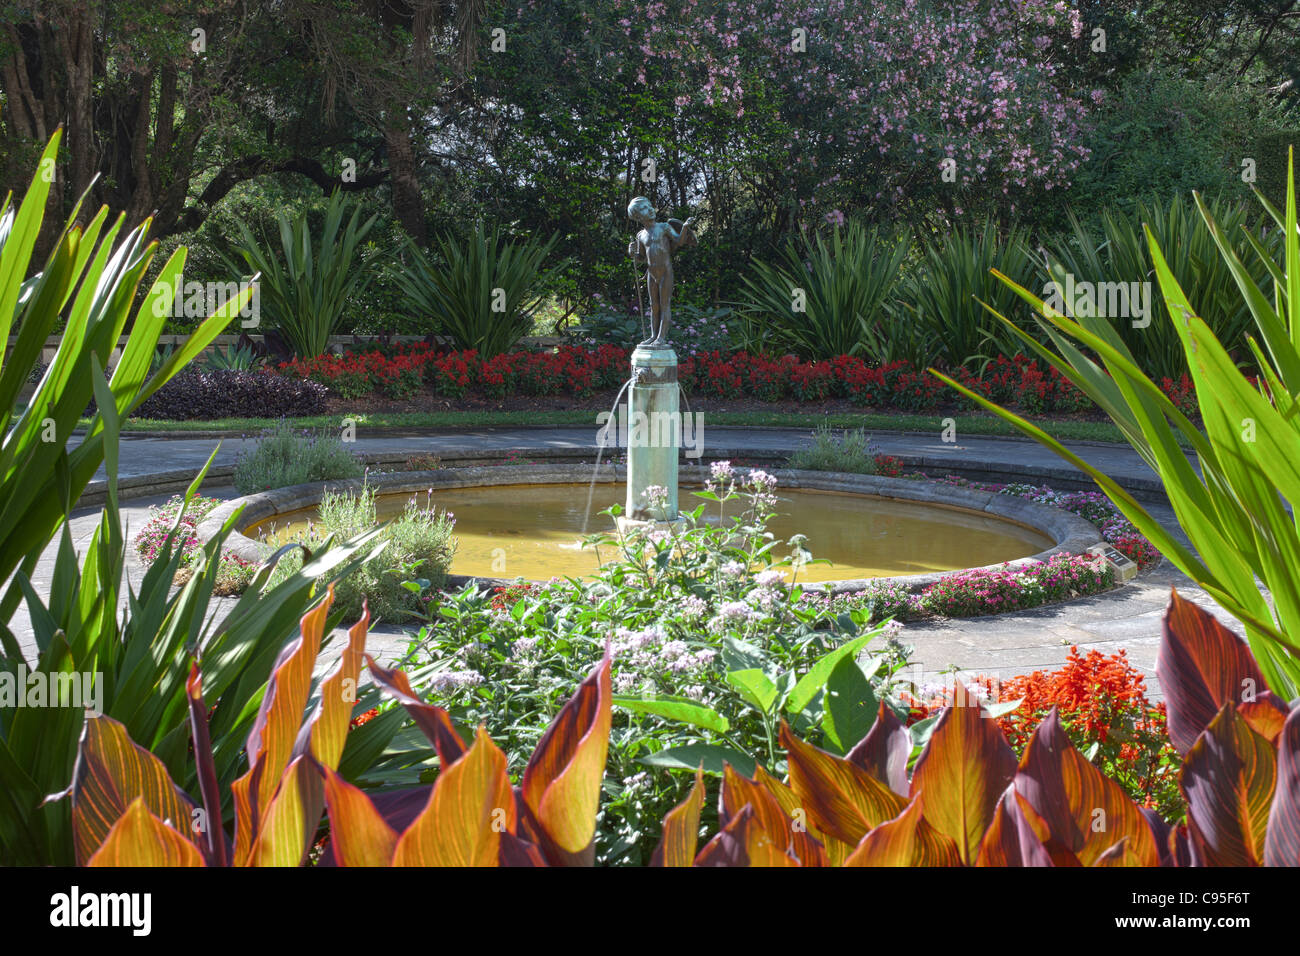 pond and fountain with statue of Cupid in Royal Botanic Gardens, Sydney, Australia - Stock Image